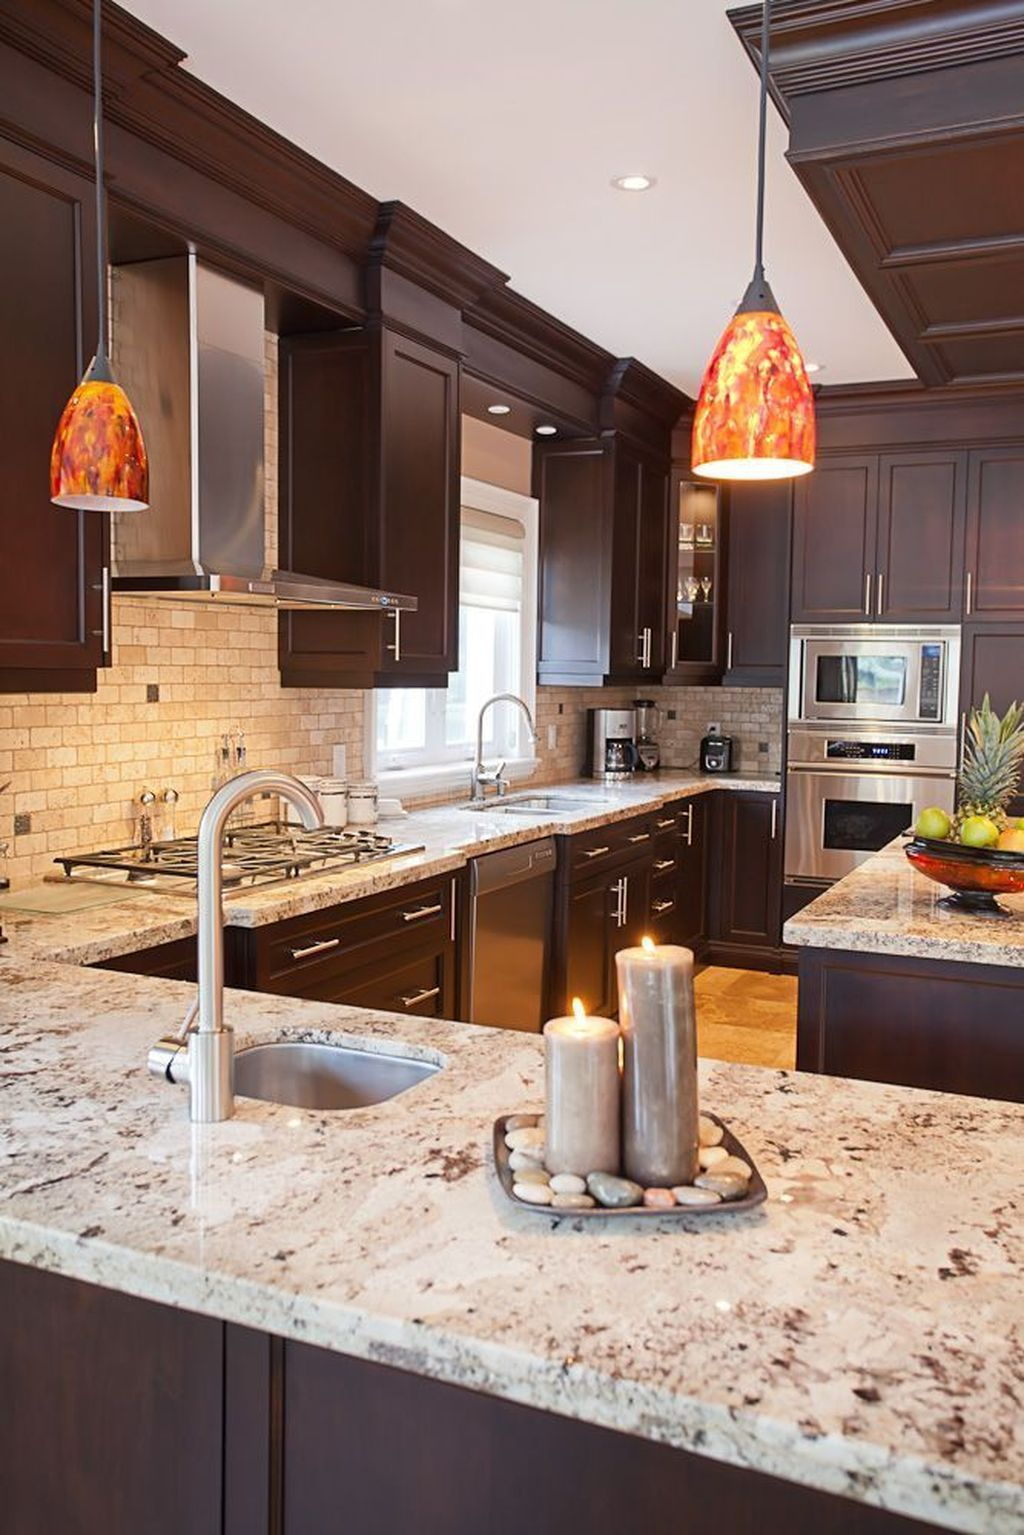 A Kitchen Remodel Ideas Can Significantly Increase The Value Of Your Home So It Requires Special Attention Course If You Re In Market For Smart